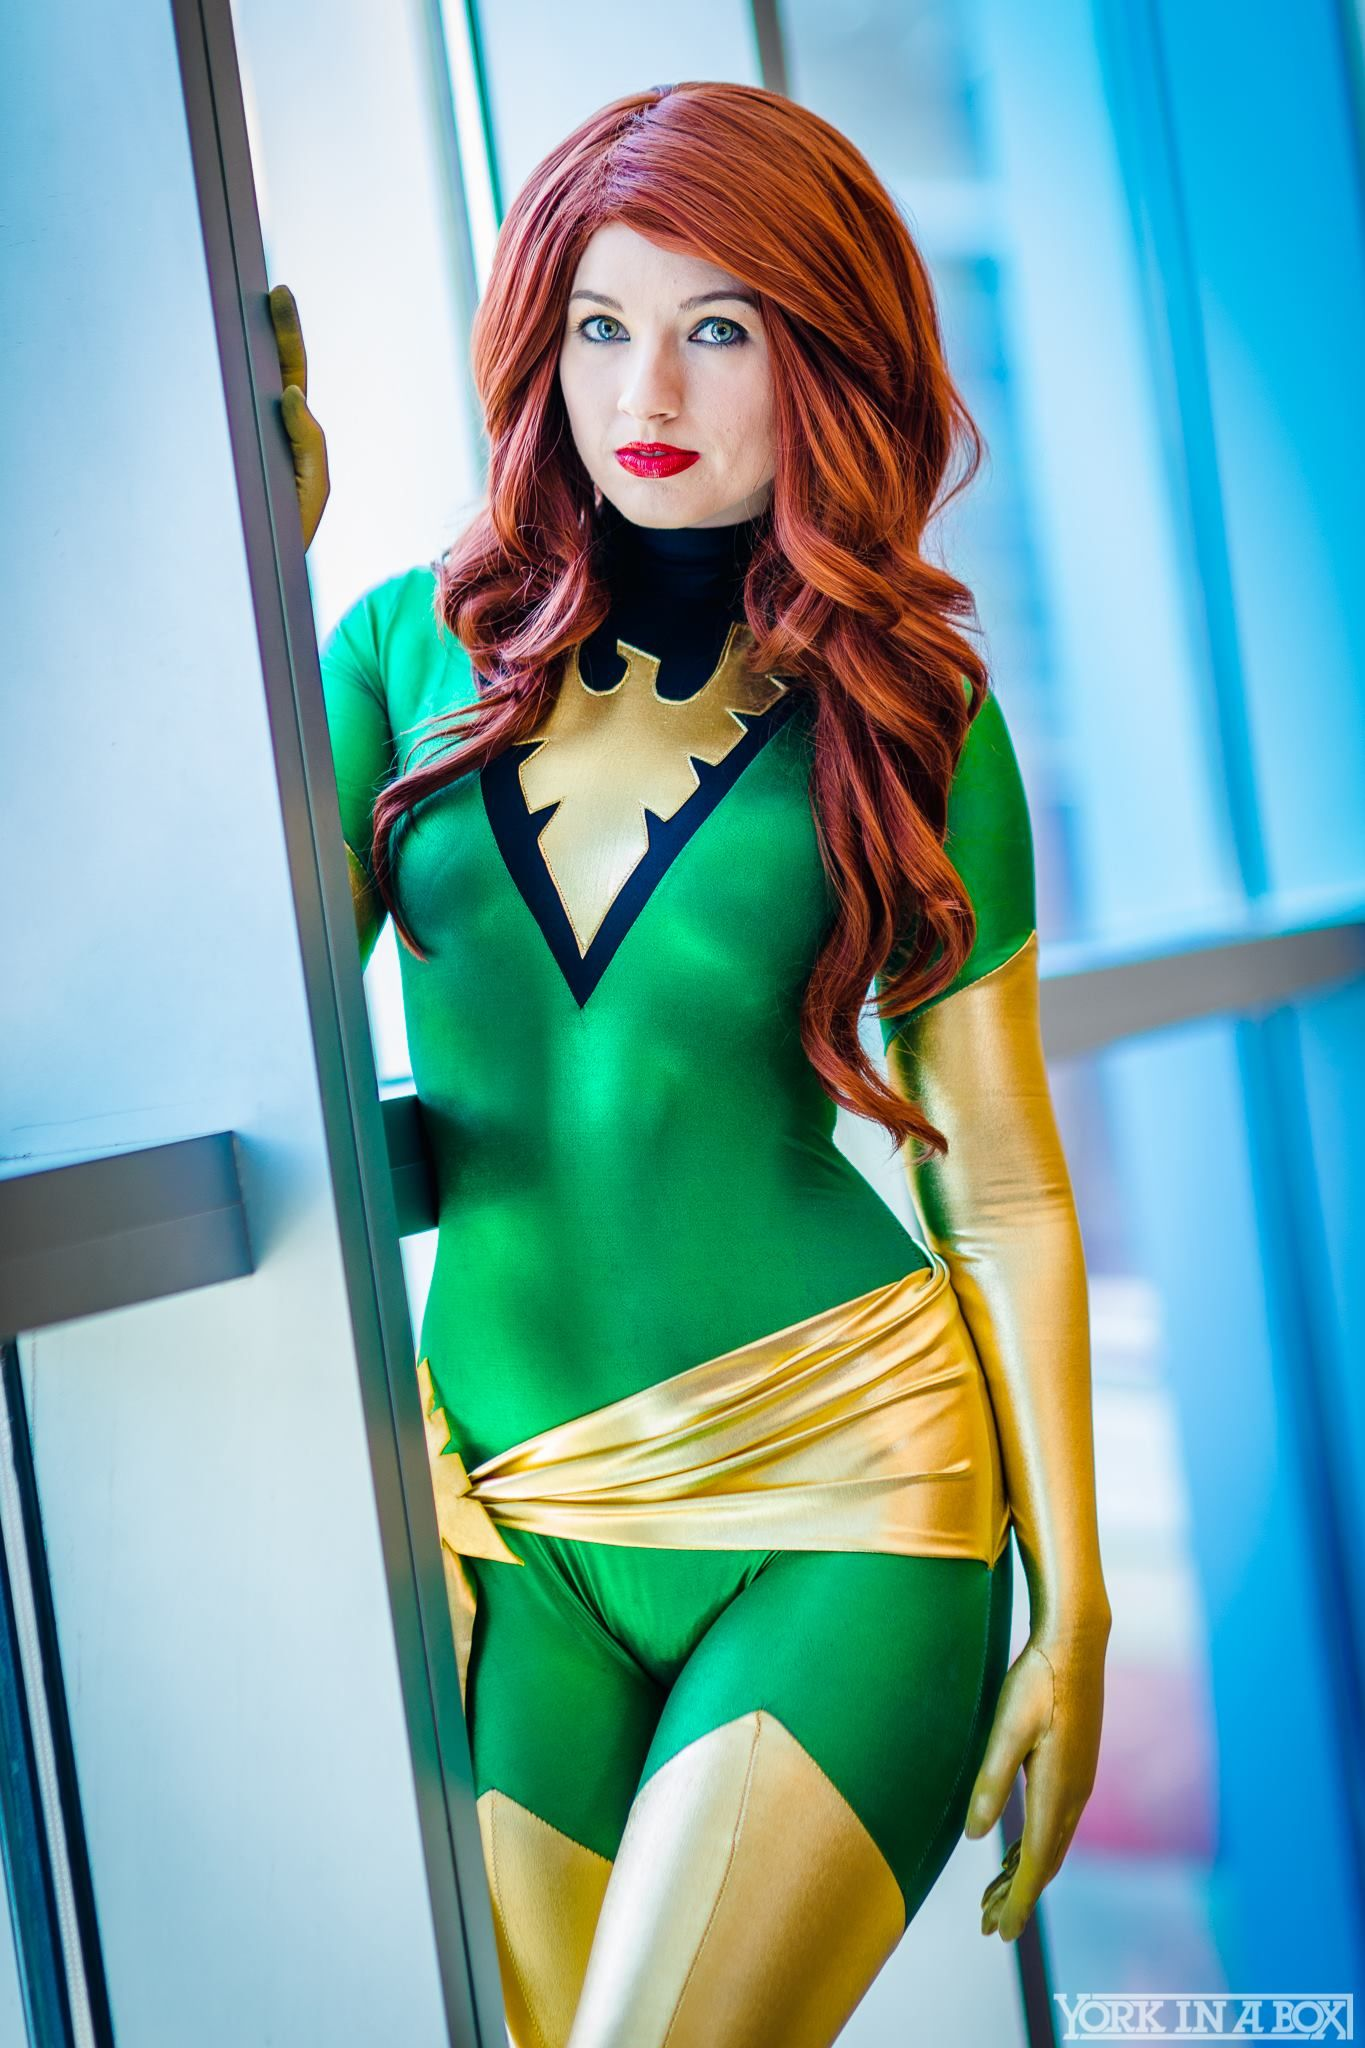 Marvel Comics, X-Men Character Jean Grey - Phoenix -9017